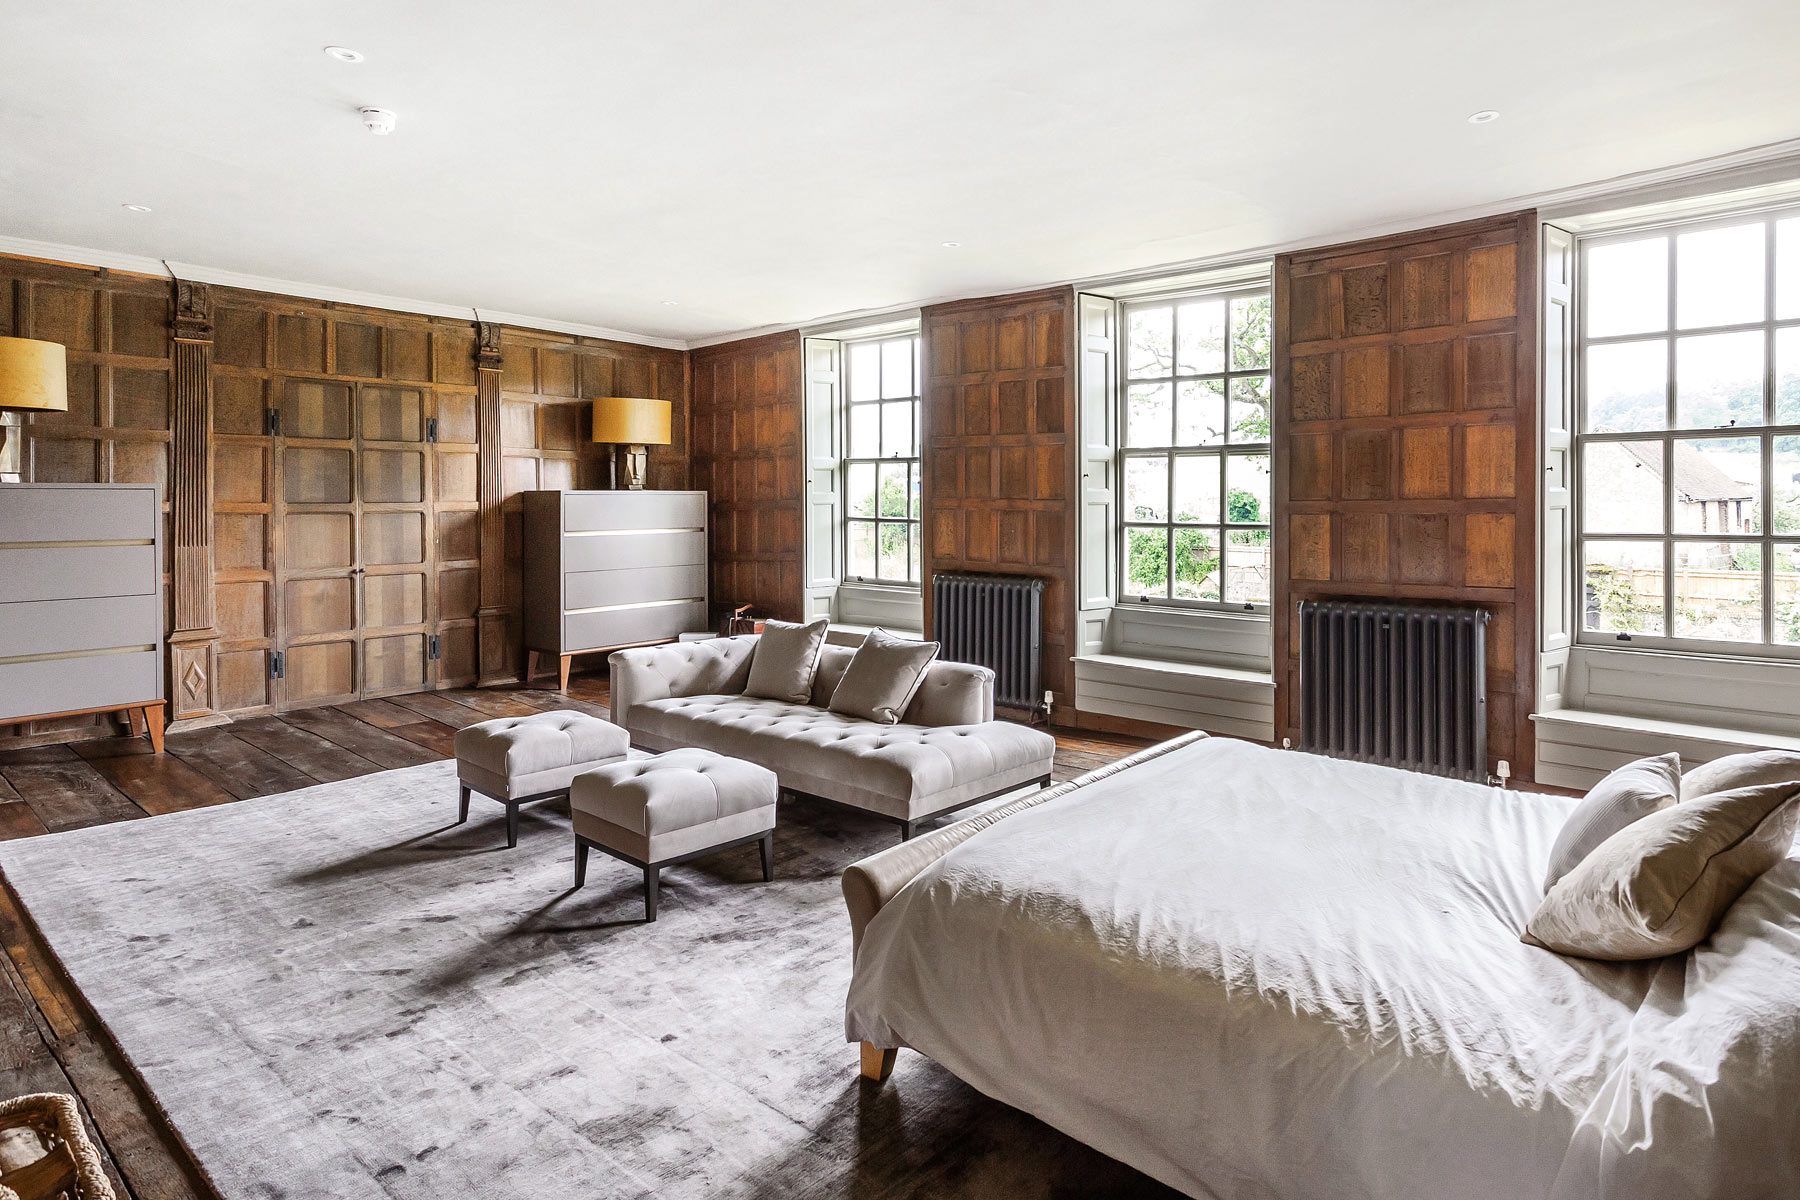 Grade 2 listed manor house bedroom KM Grant